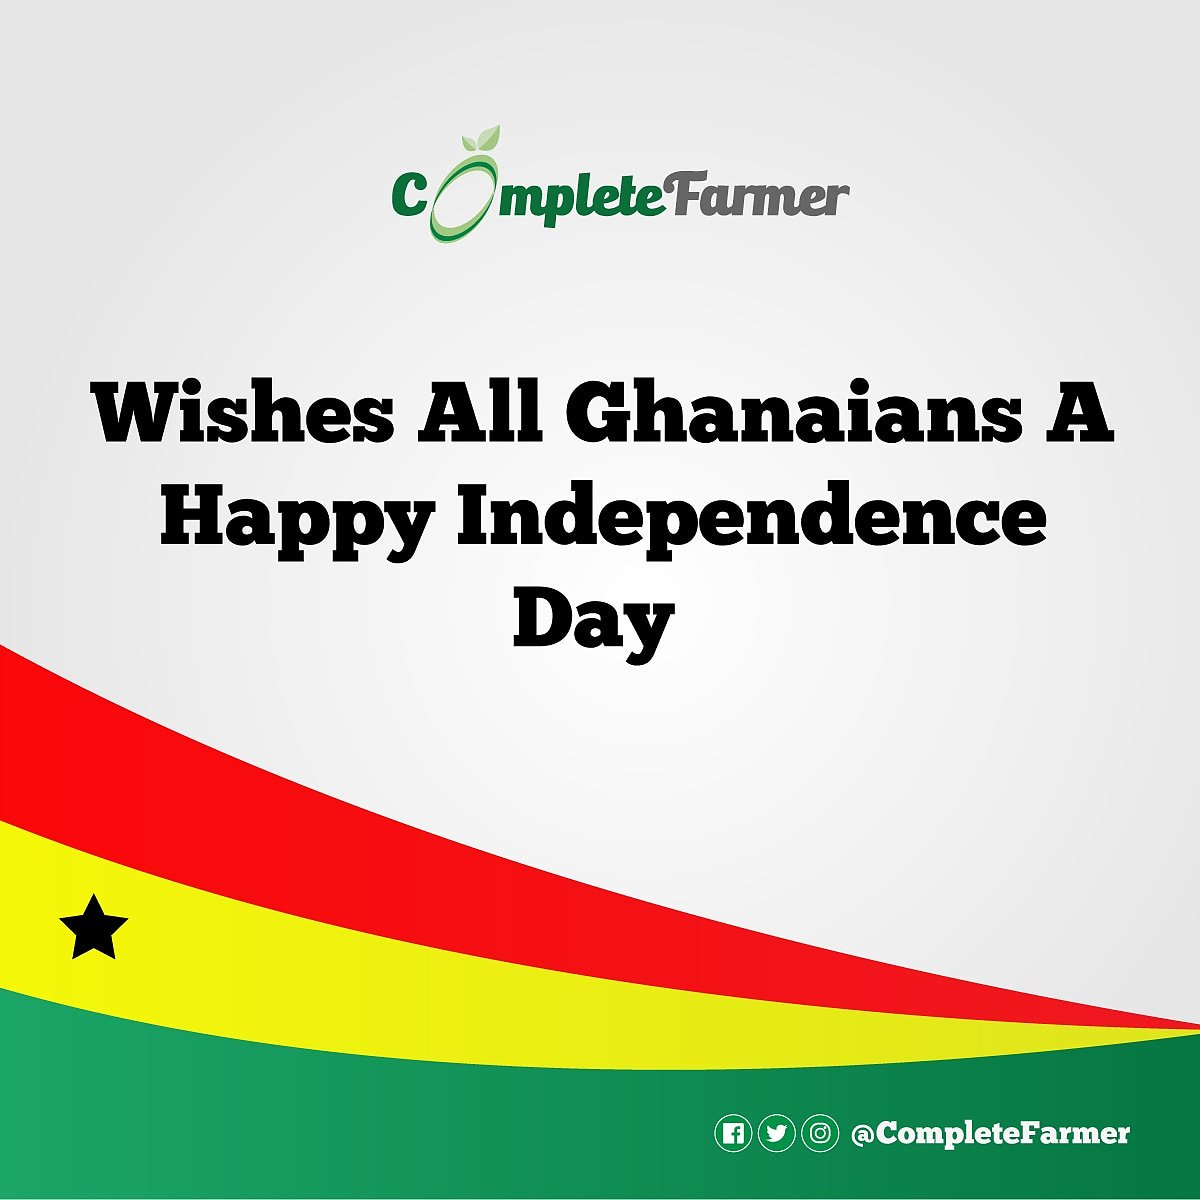 Complete Farmer On Twitter Happy Independence Day To All Ghanaians